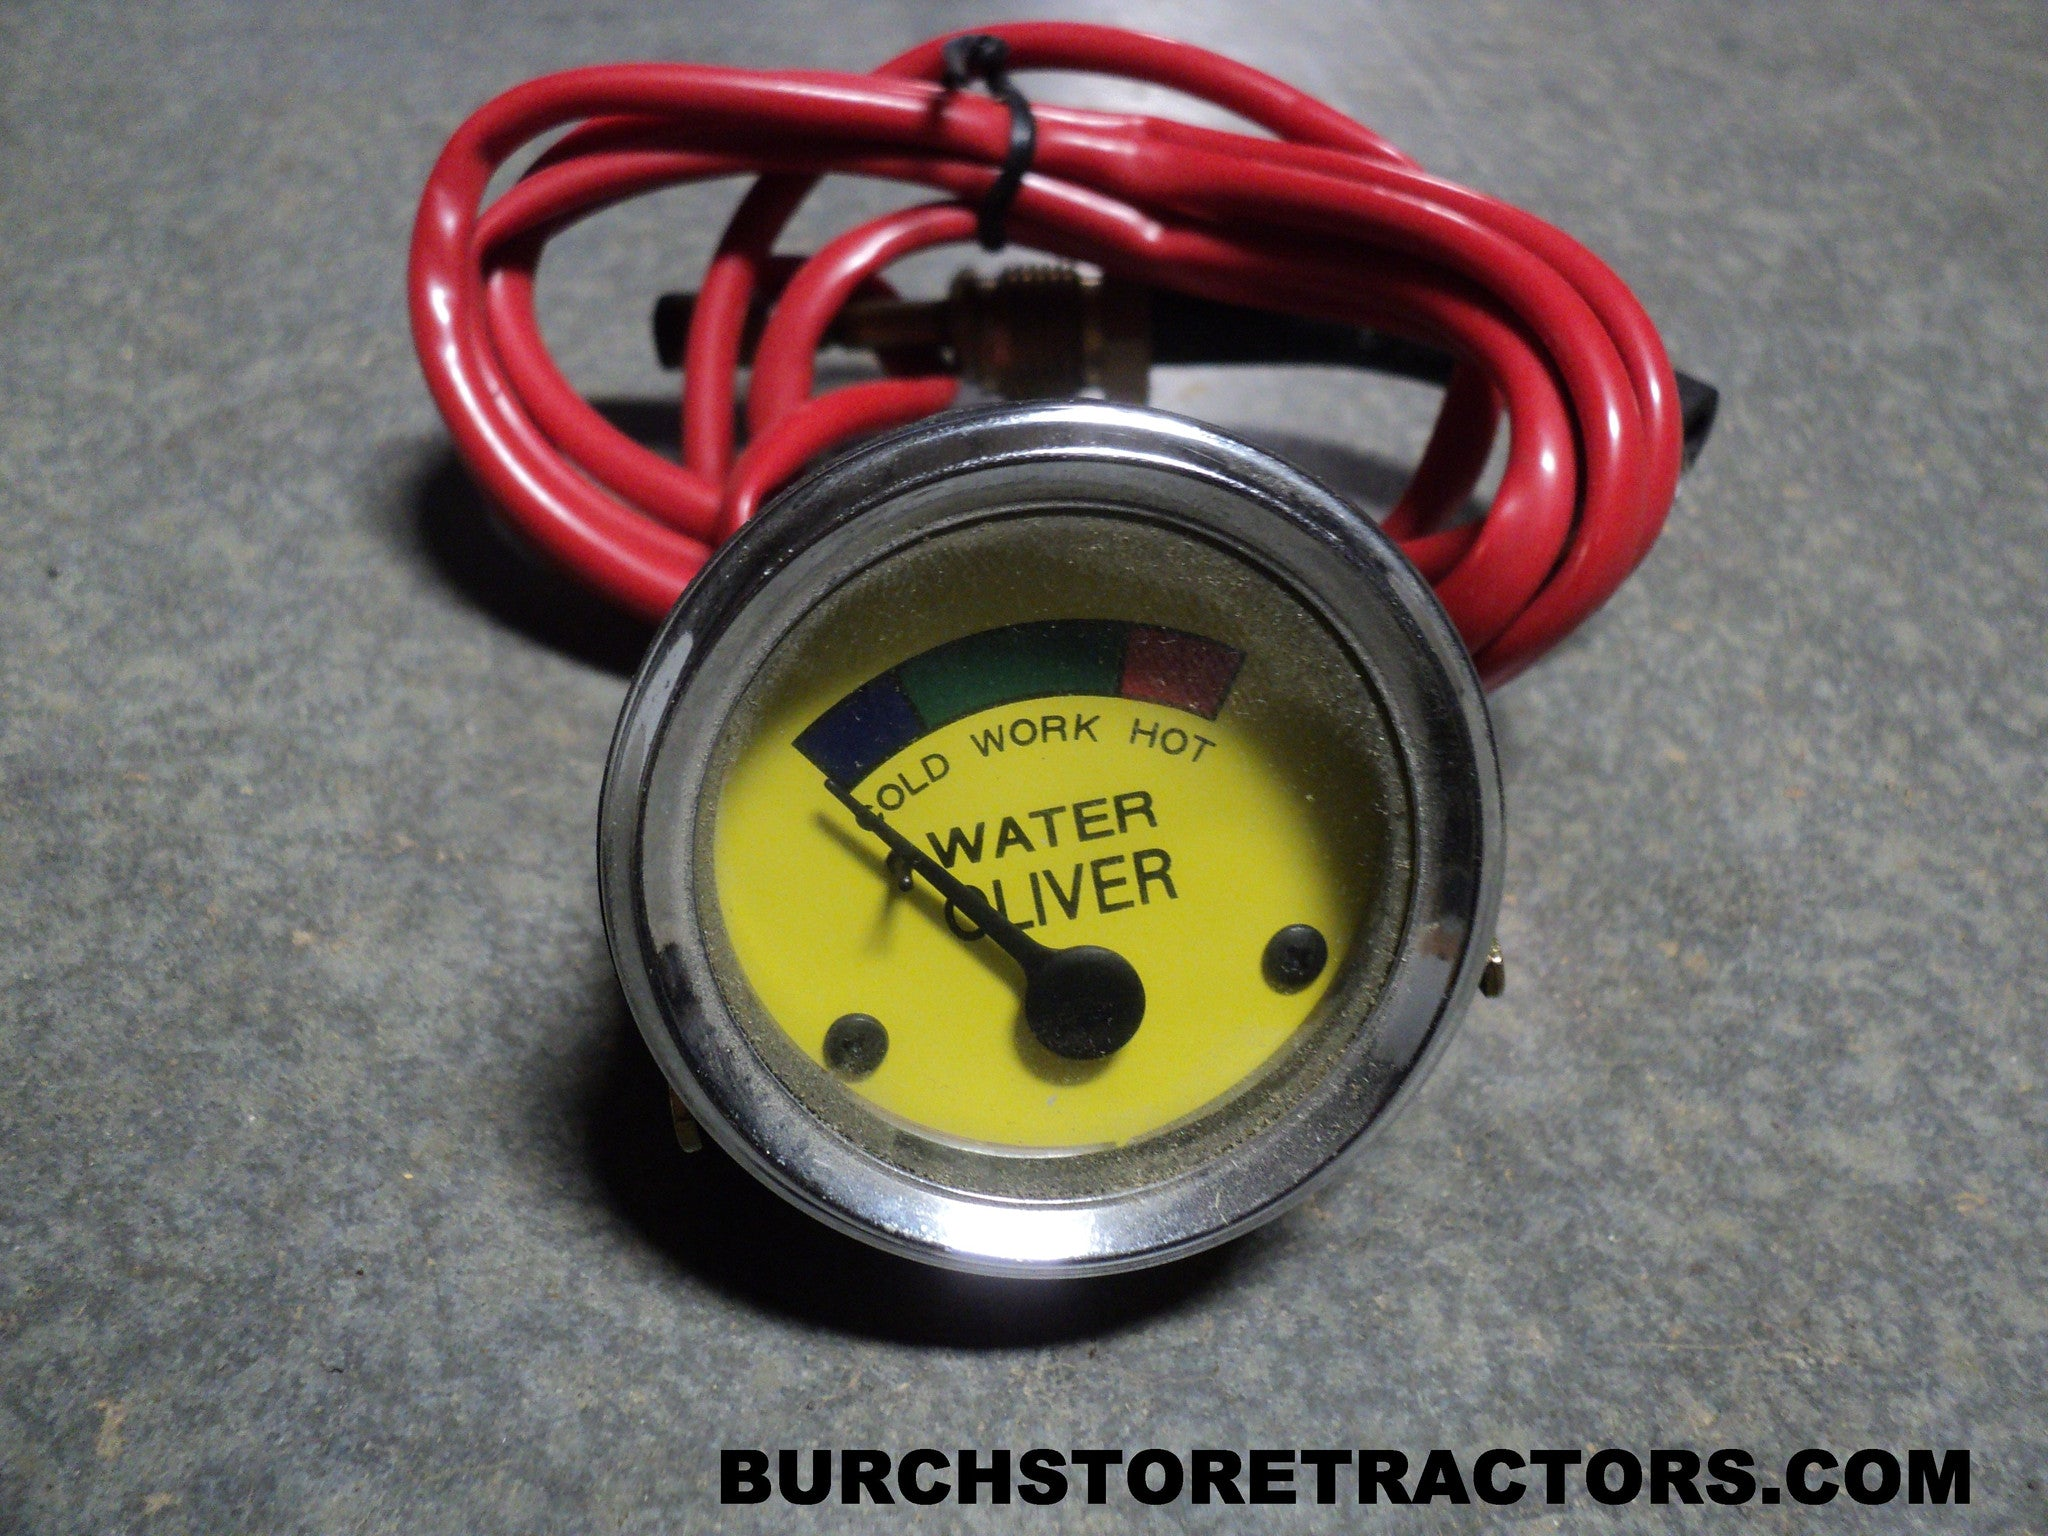 New Water Temperature Gauge For Oliver Hg Oc 3 4 6 Super Old Tractor Electrical Wiring 44 Burch Store Tractors